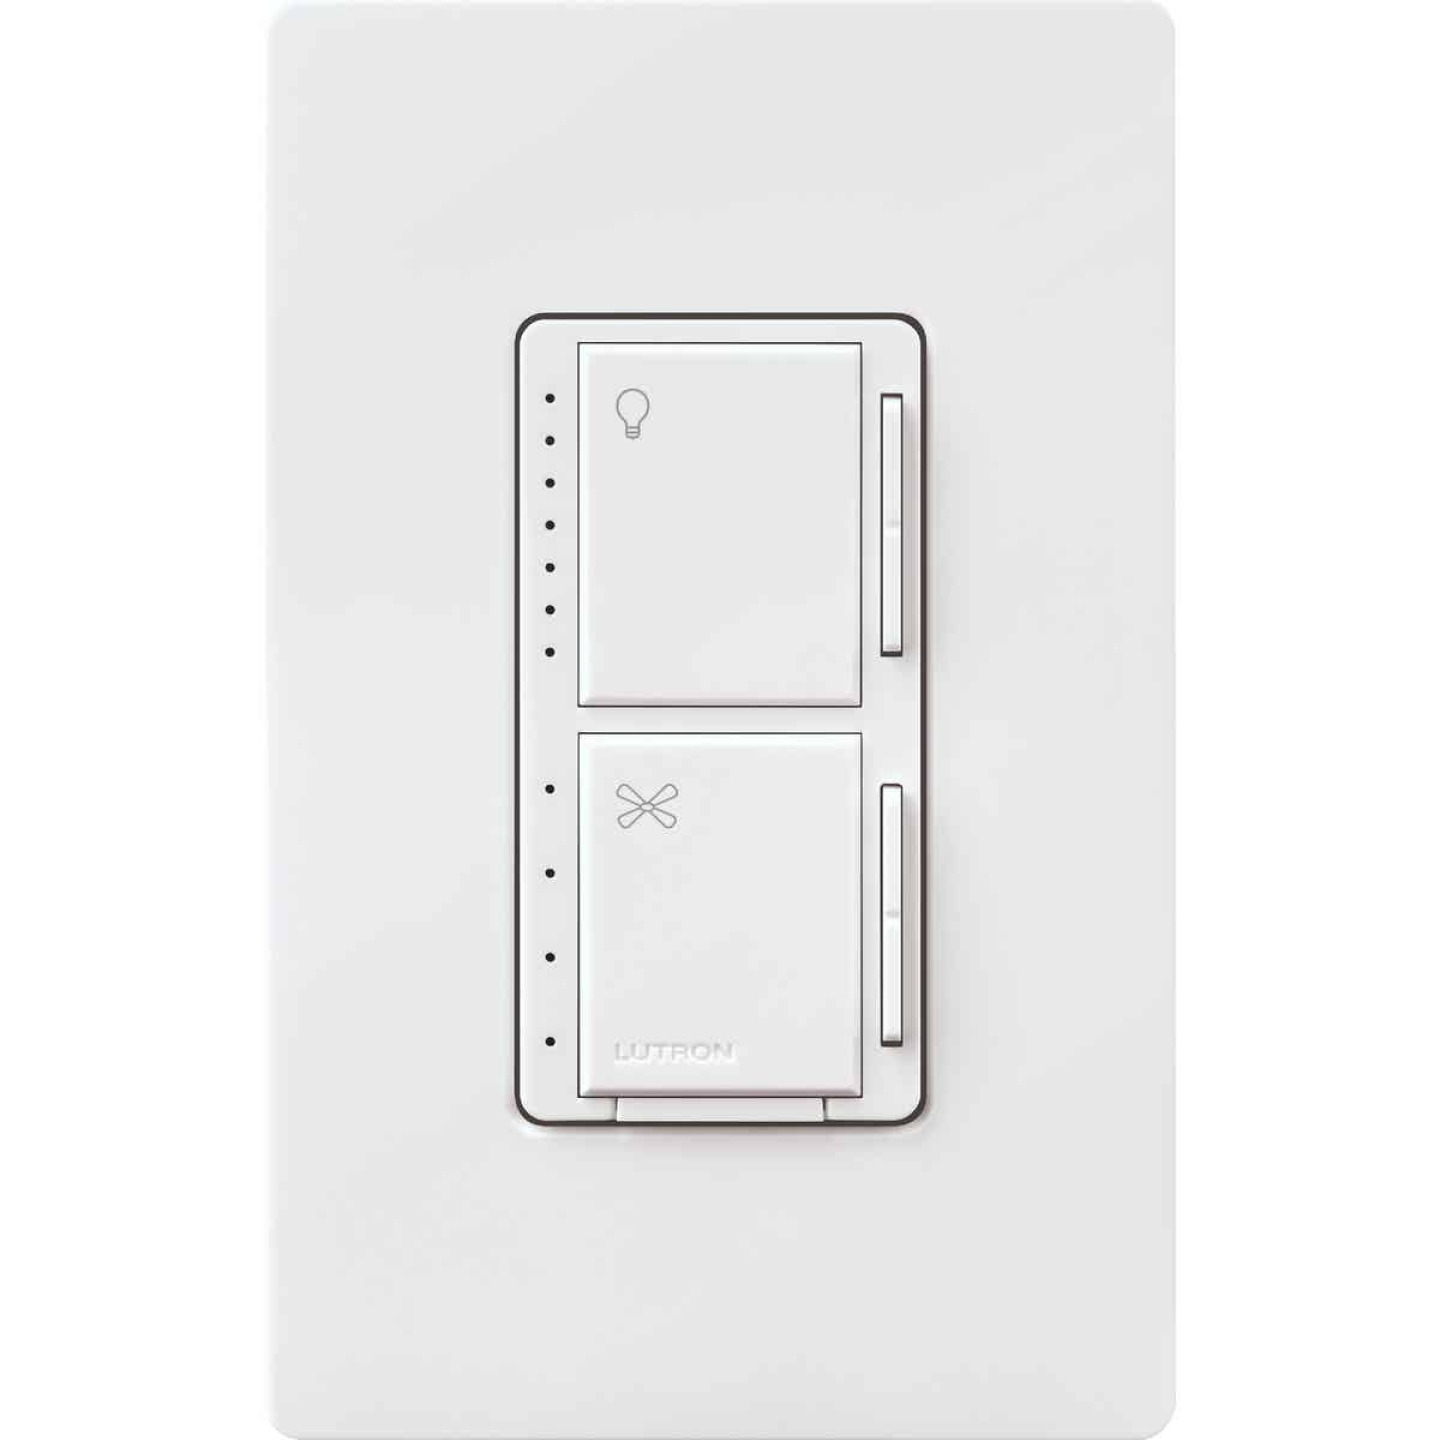 Lutron Maestro White Dimmer & Fan Control Switch Image 1